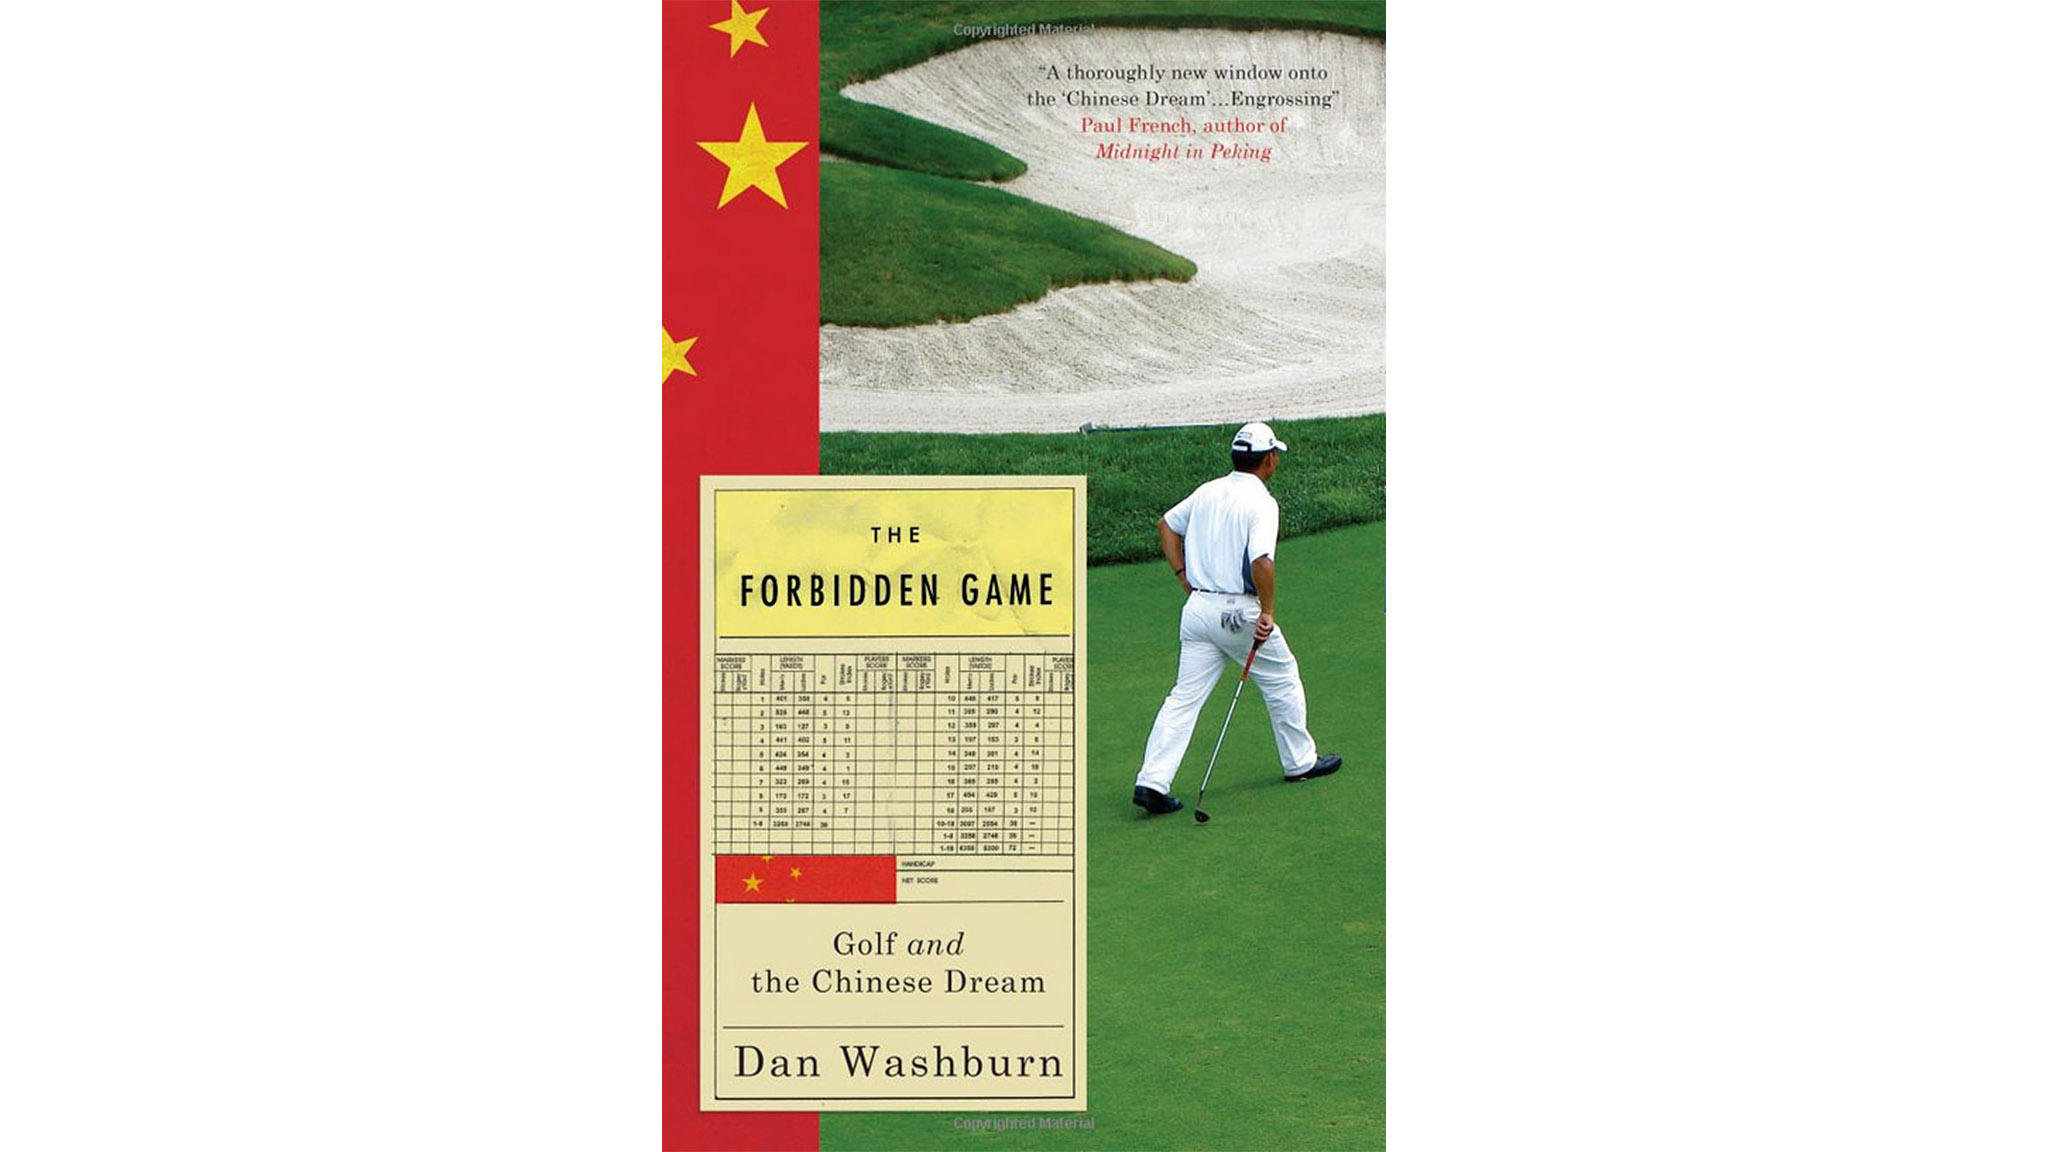 'The Forbidden Game: Golf and the Chinese Dream', by Dan Washburn |  Financial Times